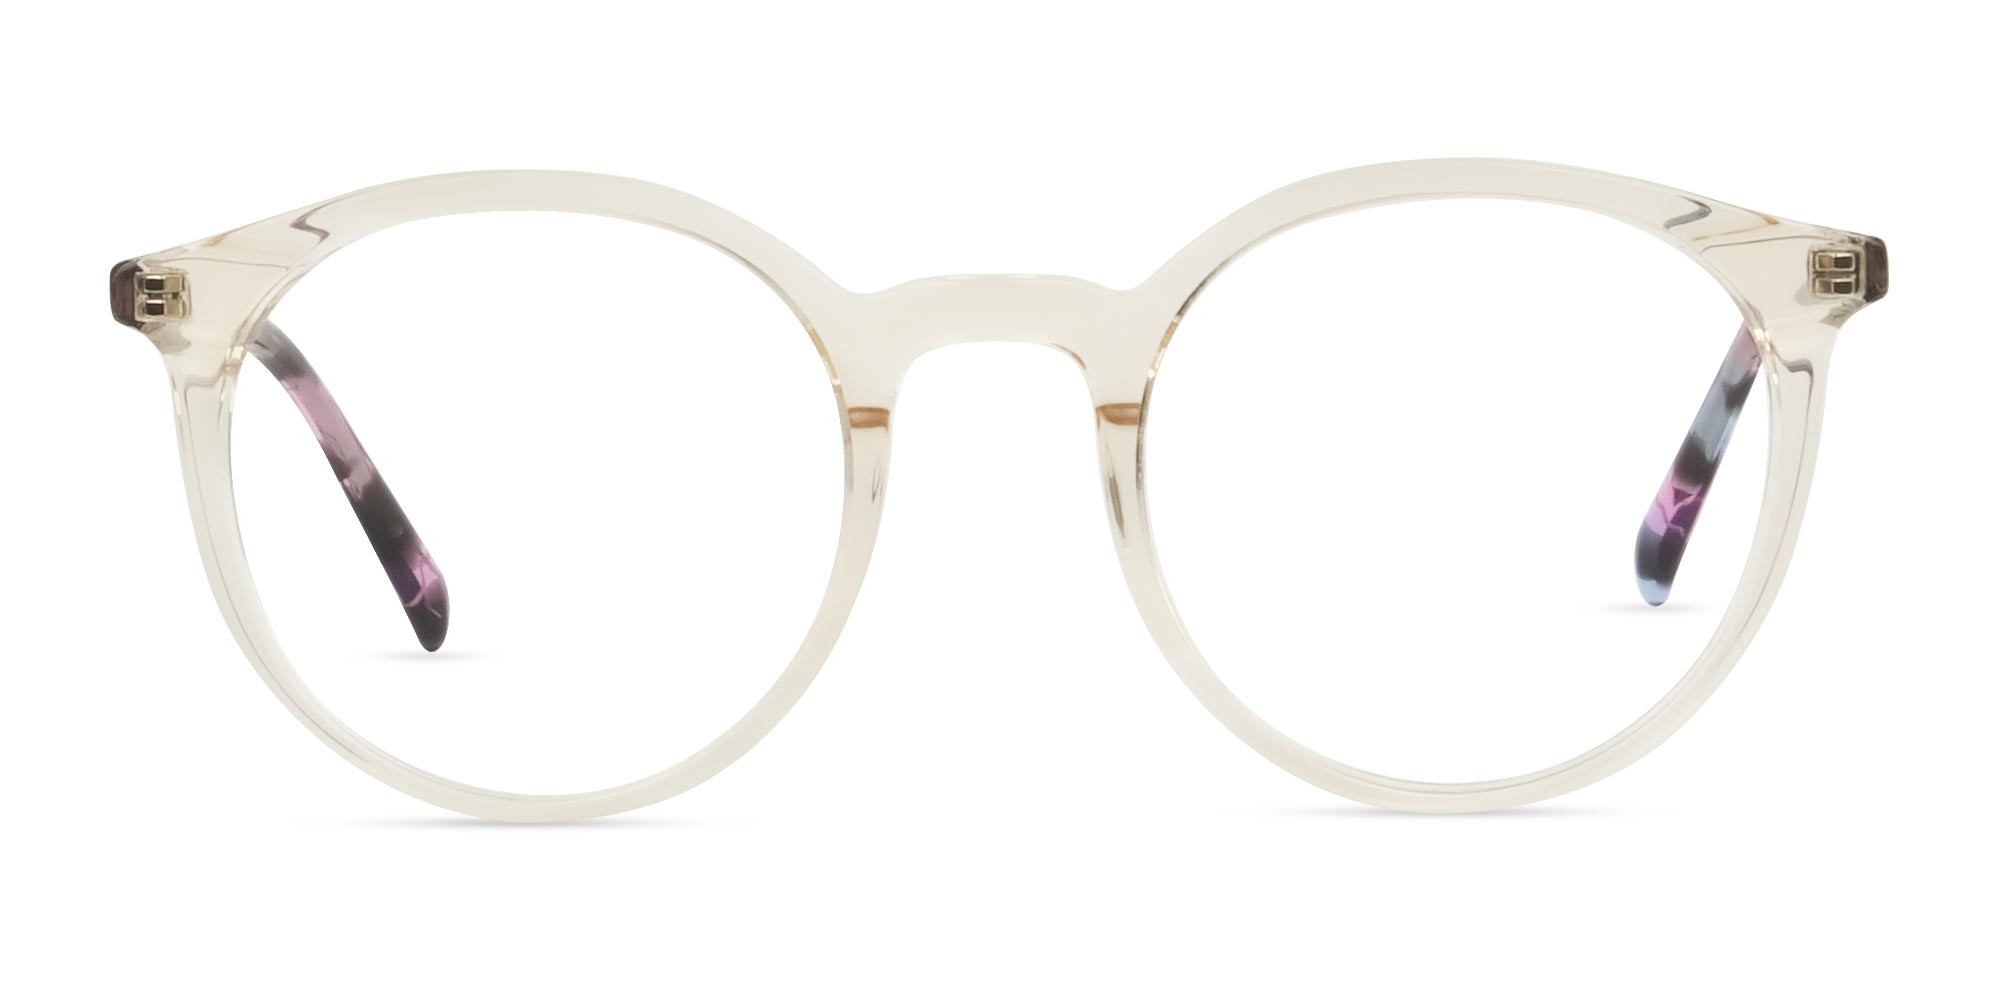 Crystal Amber Yellow Glasses Frames with Pink & Blue Tortoise Temple - 1